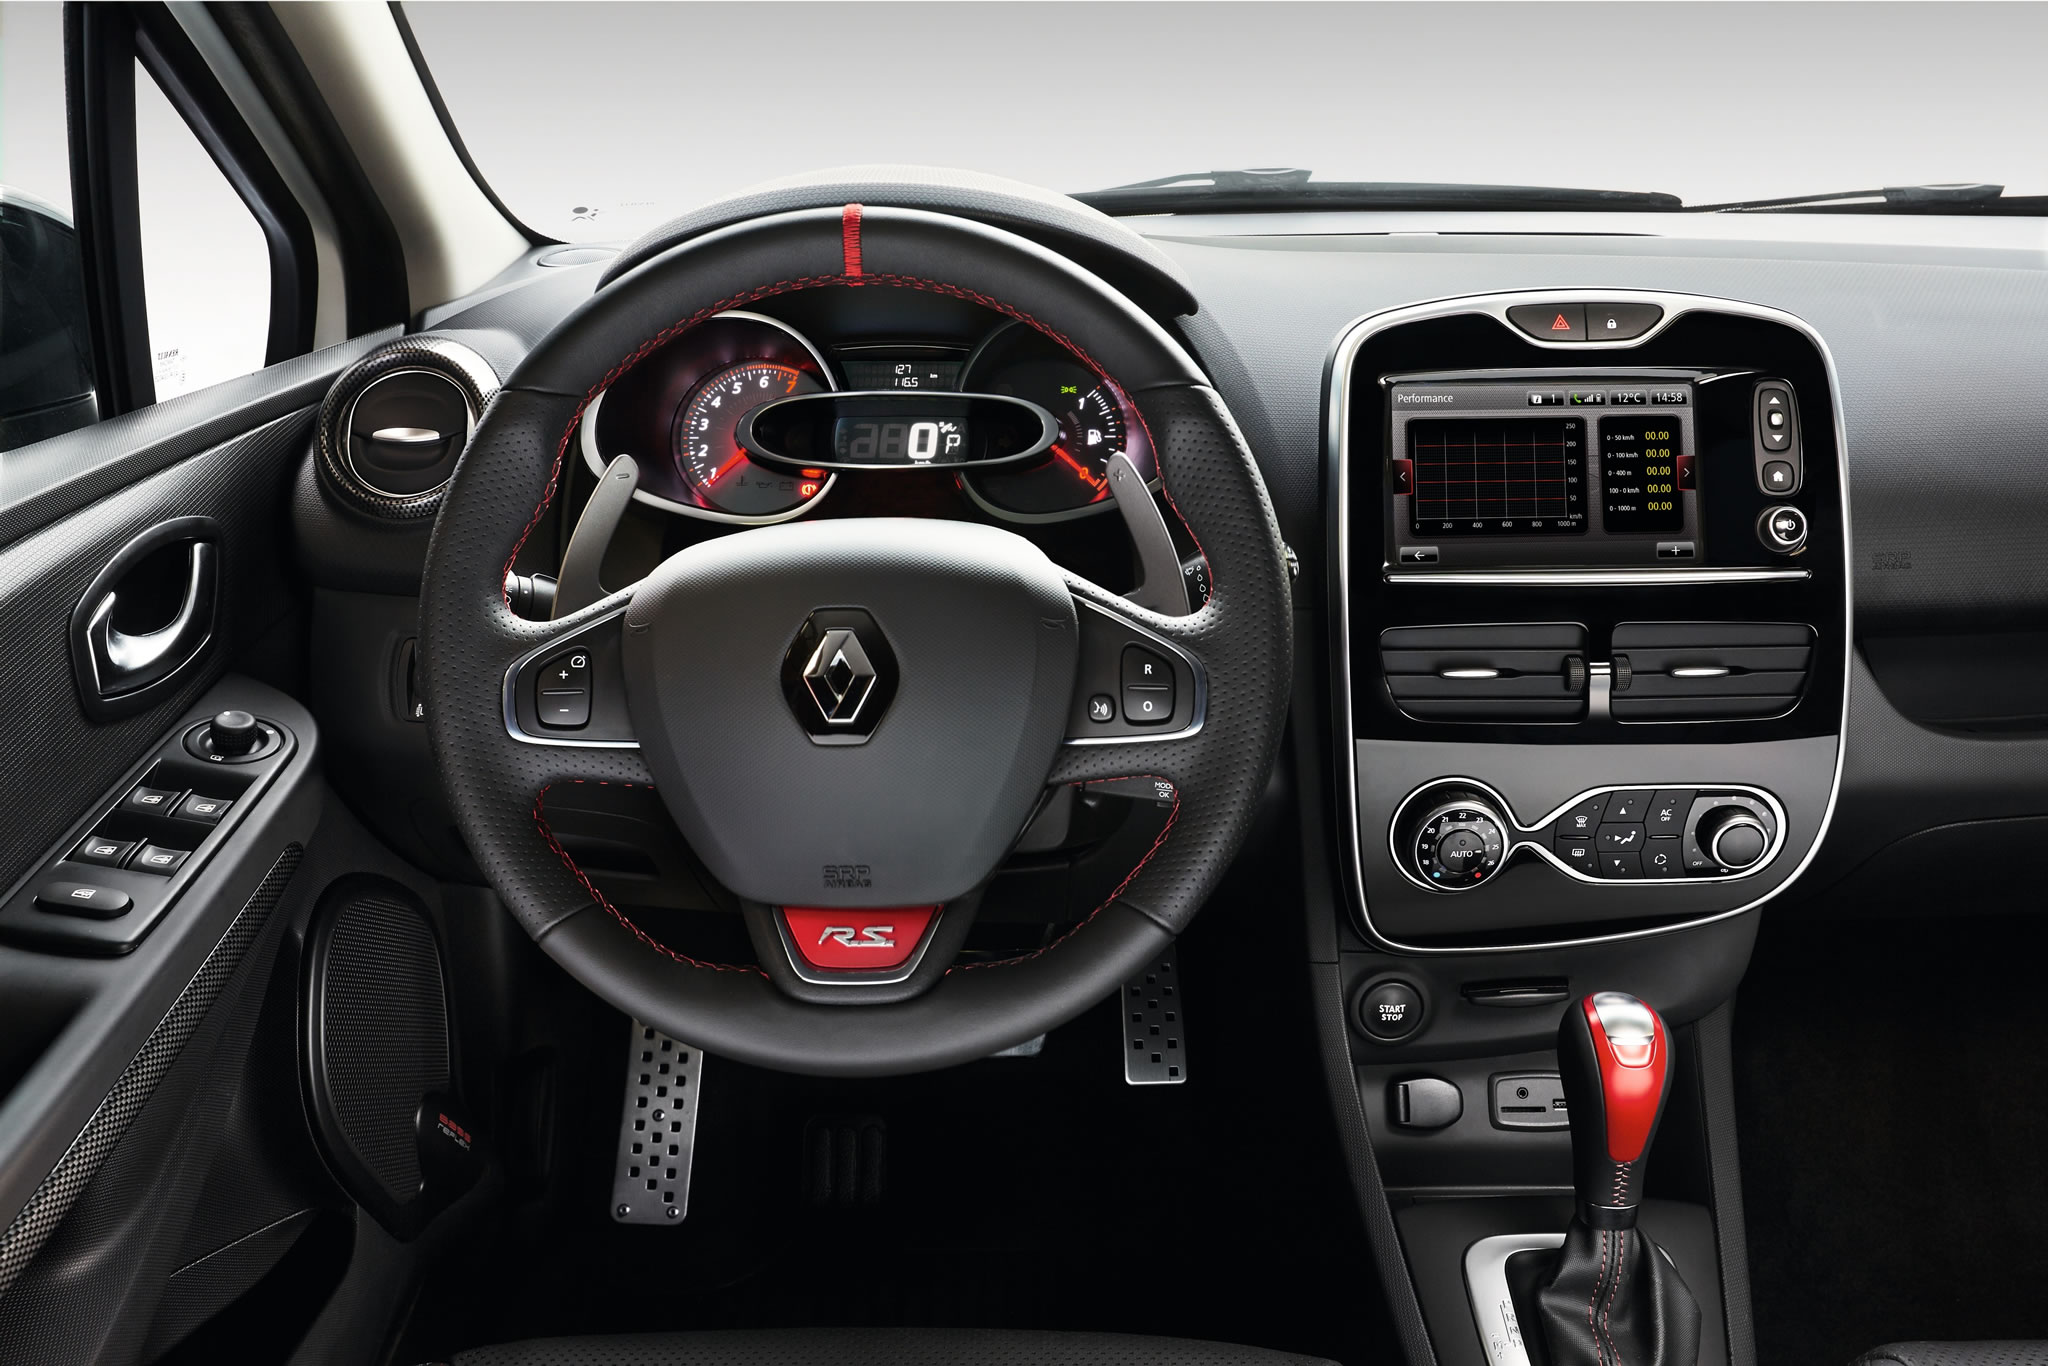 2015 renault clio r s 220 edc trophy interior photo steering wheel size 2048 x 1366 nr 12. Black Bedroom Furniture Sets. Home Design Ideas